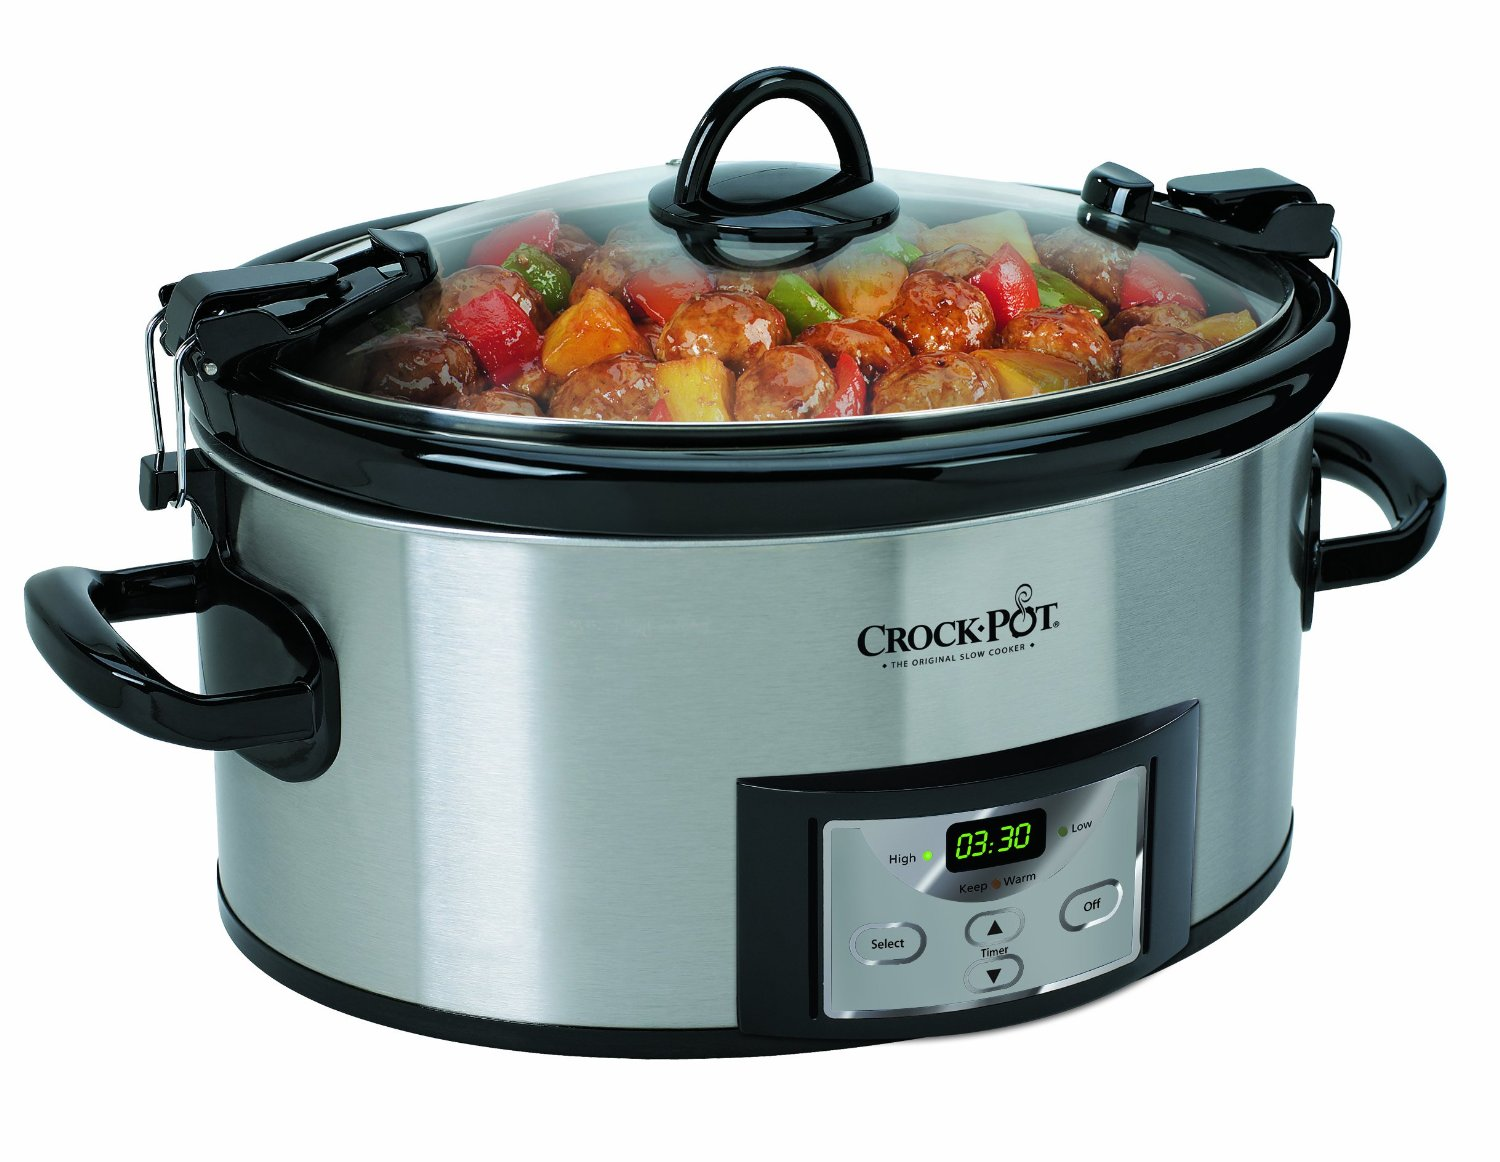 This [6-Quart Slow Cooker from Crock-Pot](https://www.amazon.com/dp/B004P2NG0K?tag=toolstoysdeals-20) is down to a great price.